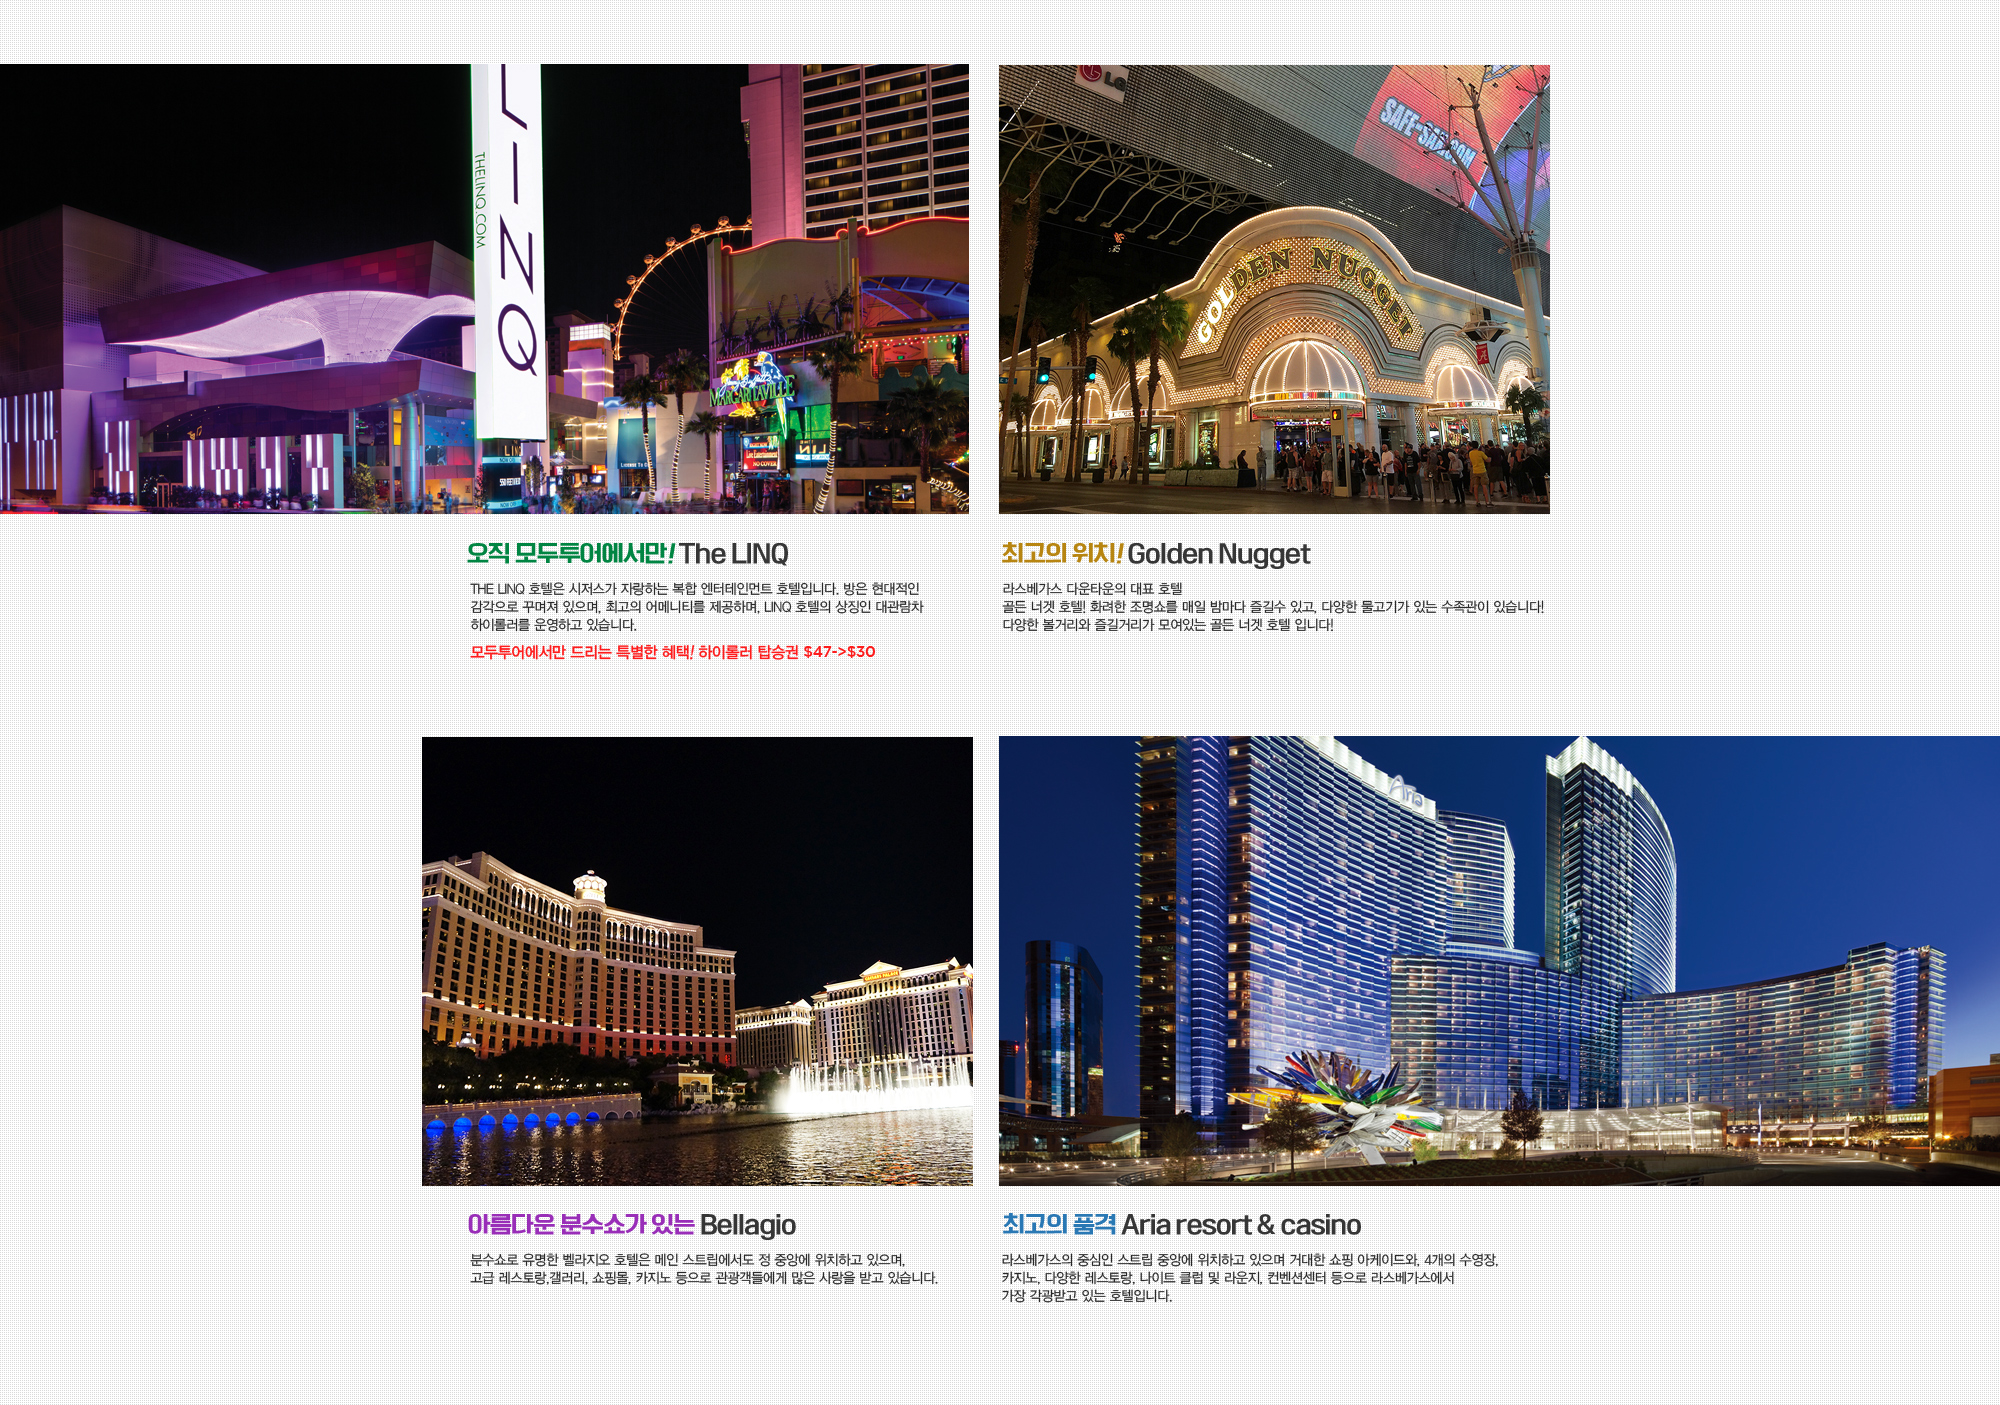 호텔-The LINQ,Golden Nugget,Bellagio,Aria resort&casino